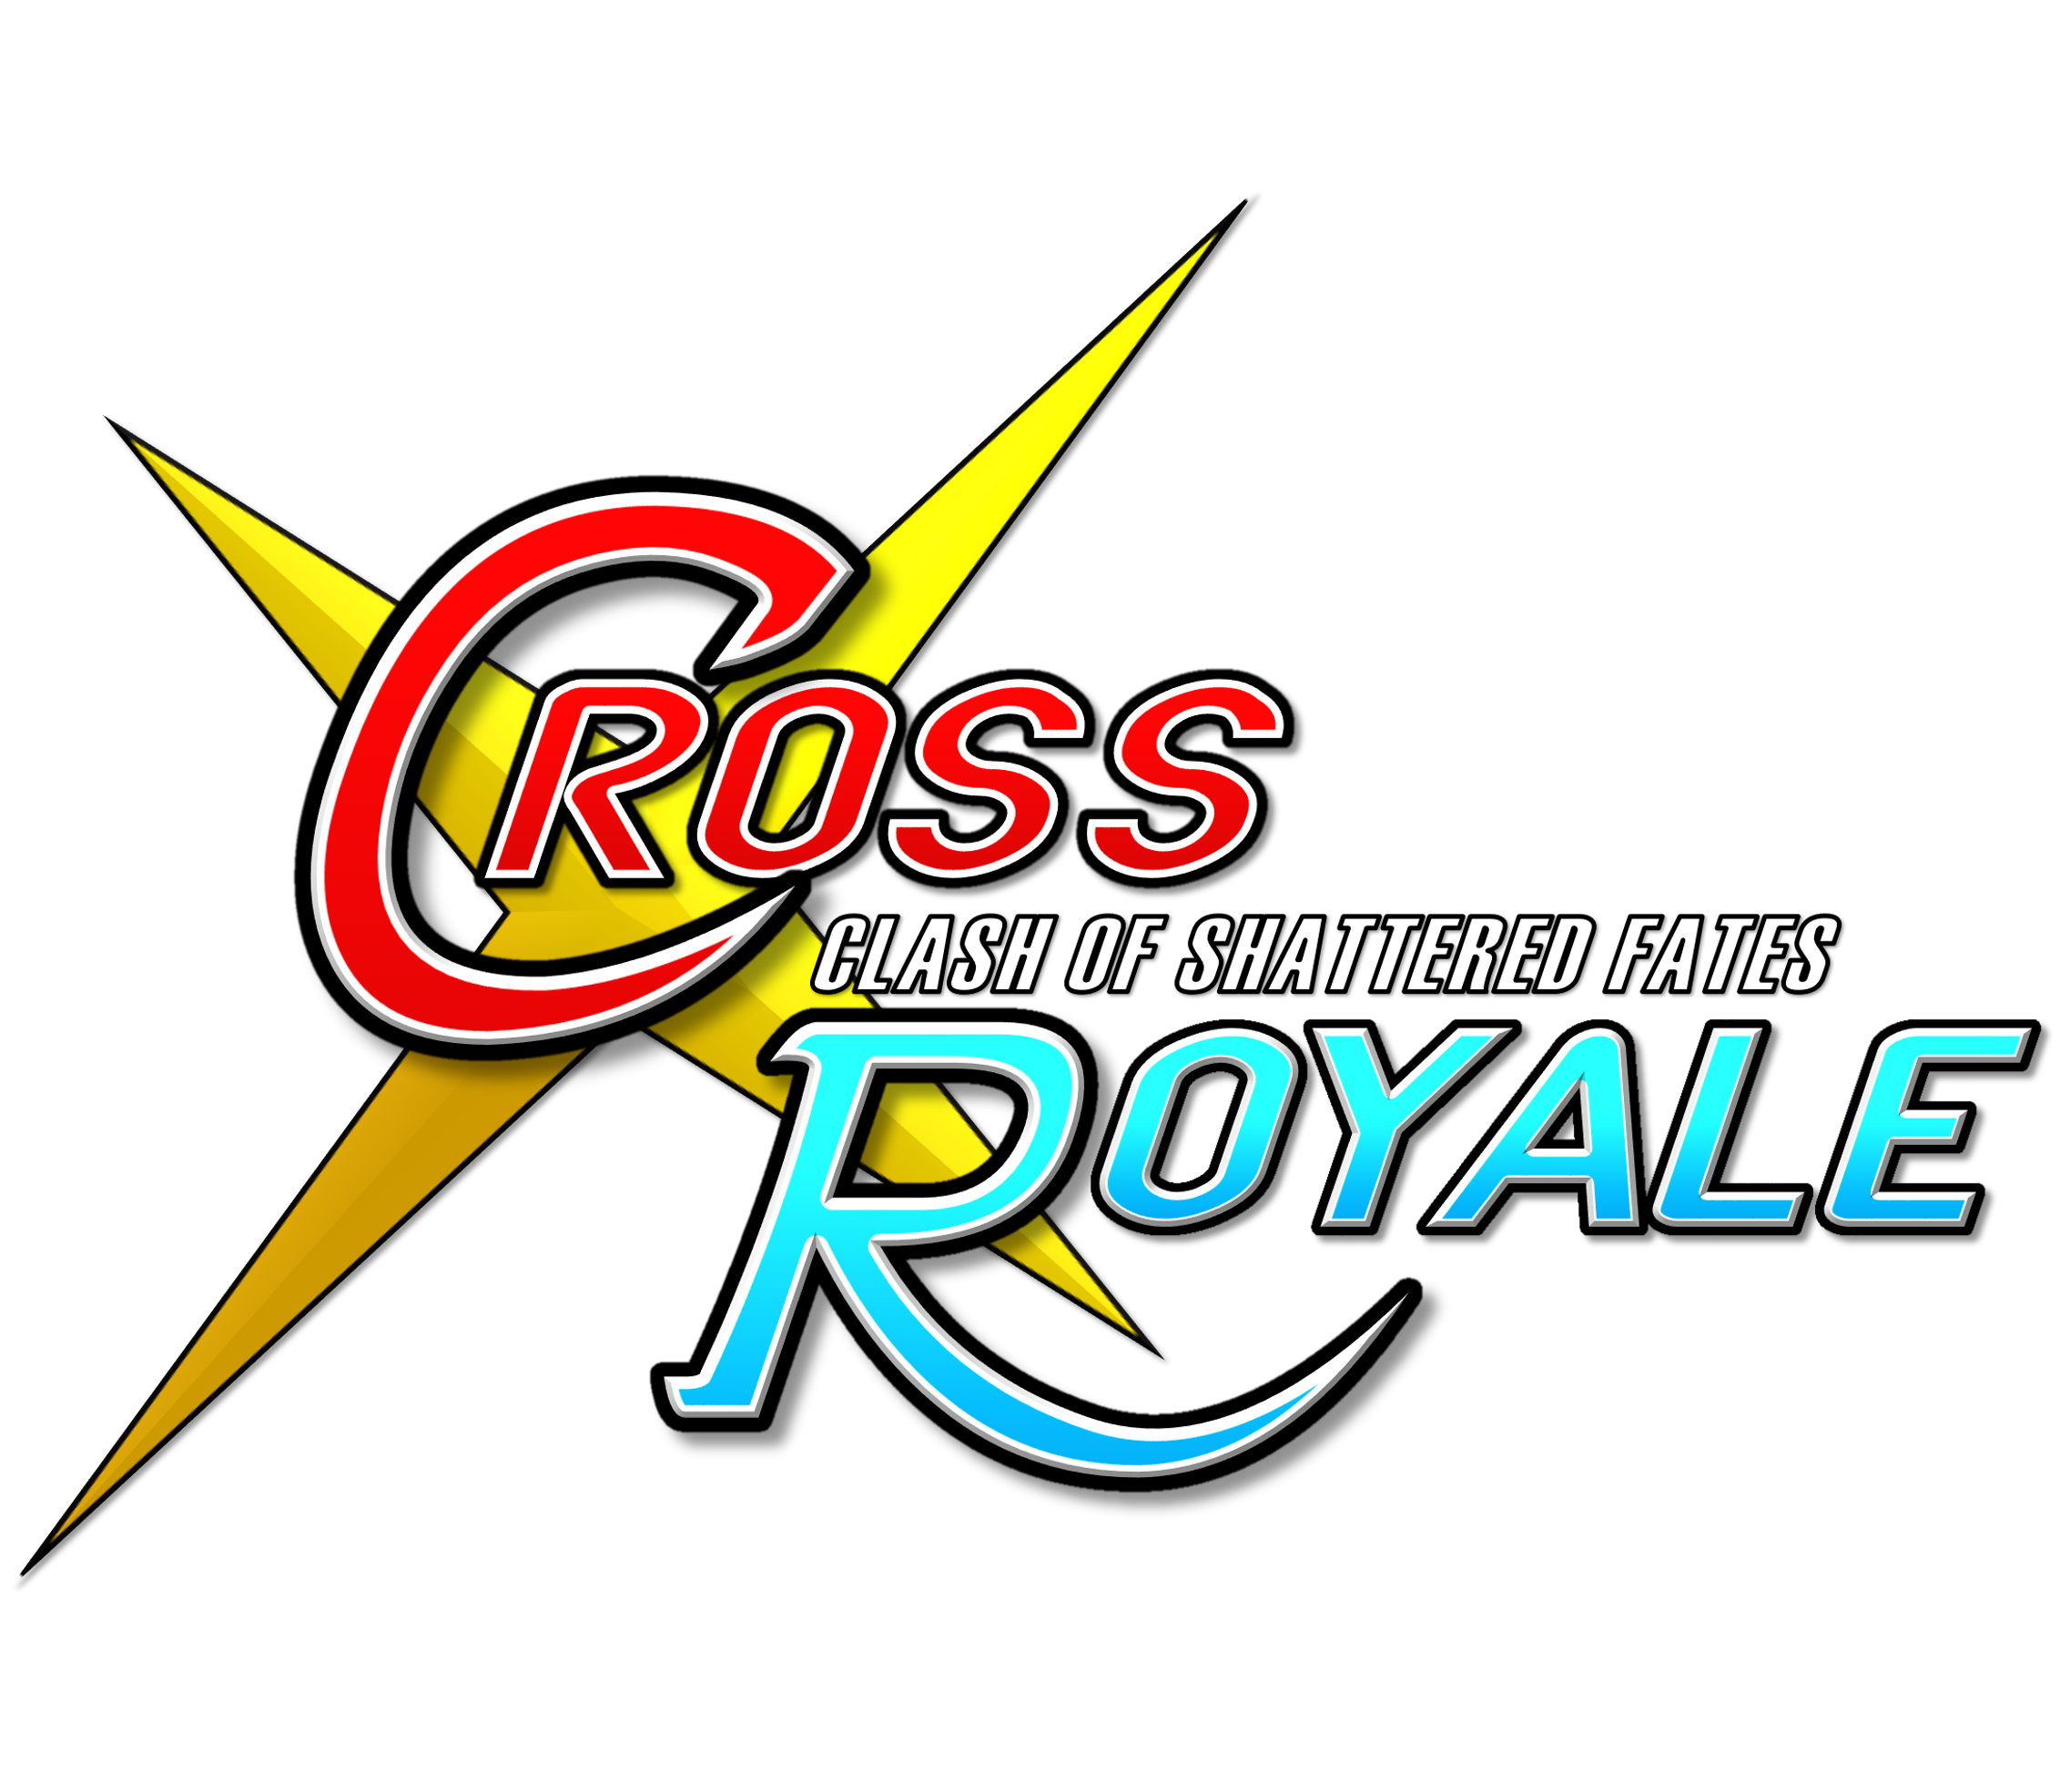 Cross Royale: Clash of Shattered Fates